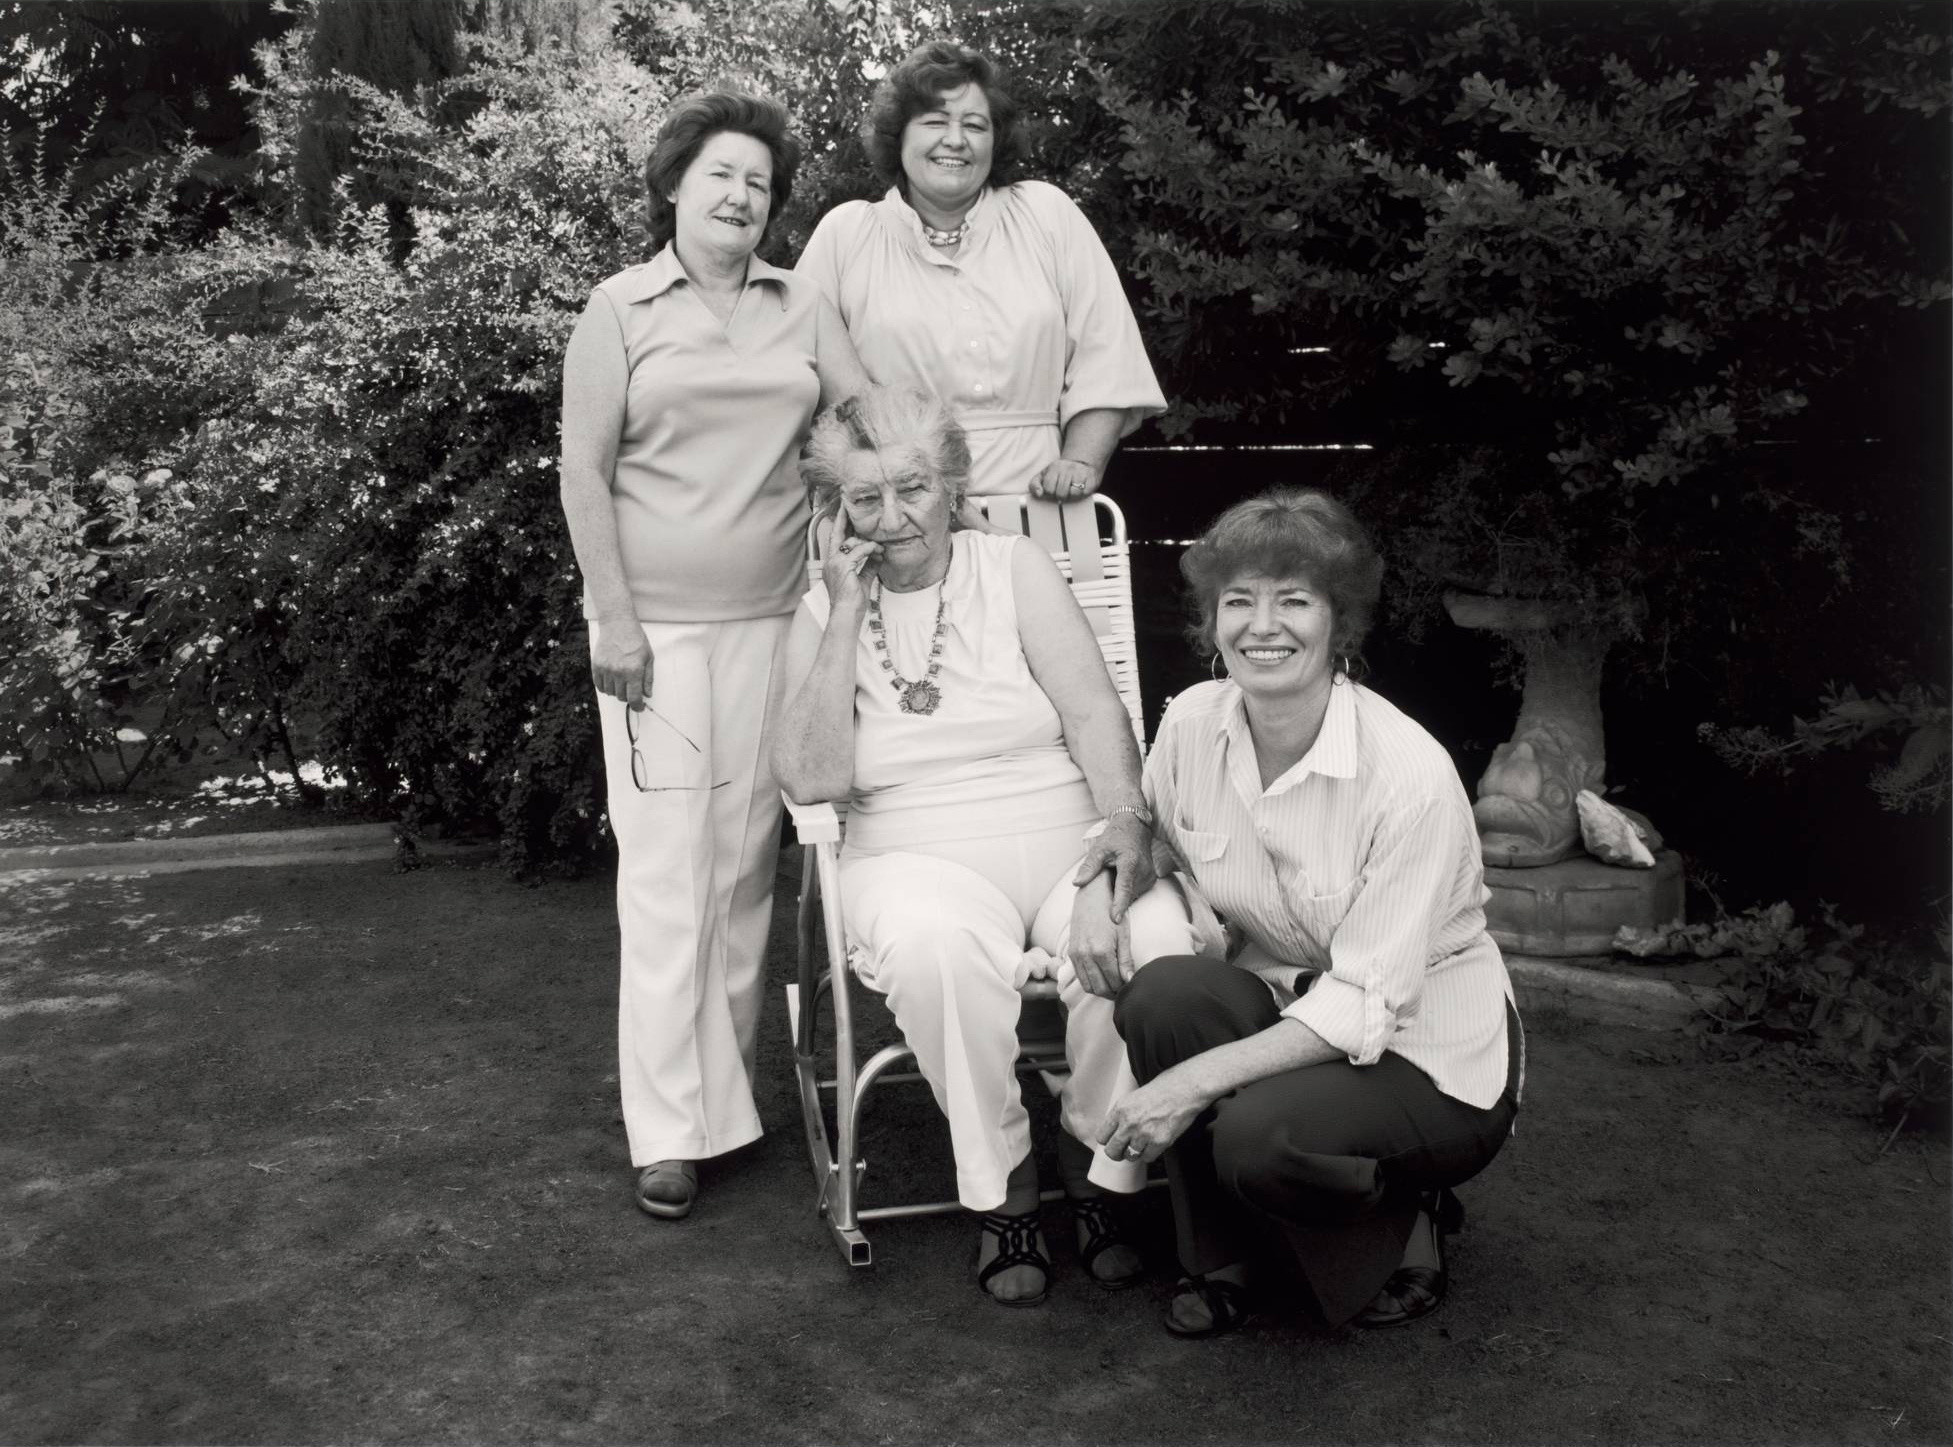 Bill Ganzel. Migrant Mother, Florence Thompson, and her daughters Katherine McIntosh, Ruby Sprague and Norma Rydlewski at Norma's House, Modesto, California. June 1979